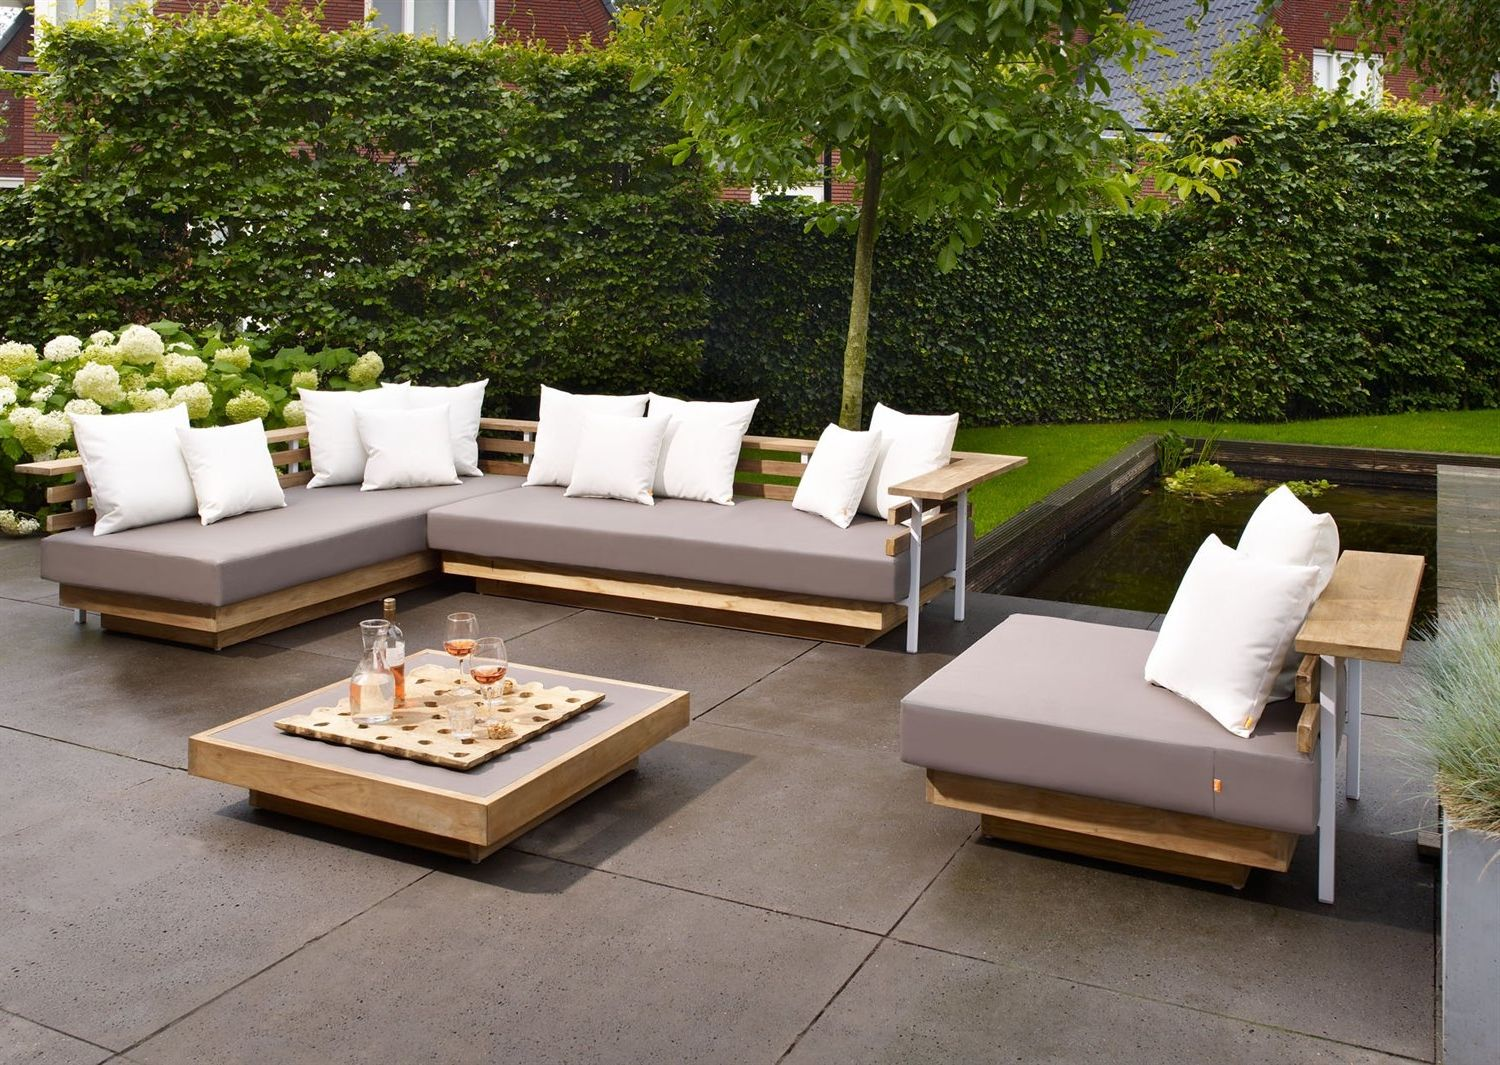 Etonnant Inspiration Patio Lounge Furniture For Interior Designing Home Ideas With Patio  Lounge Furniture